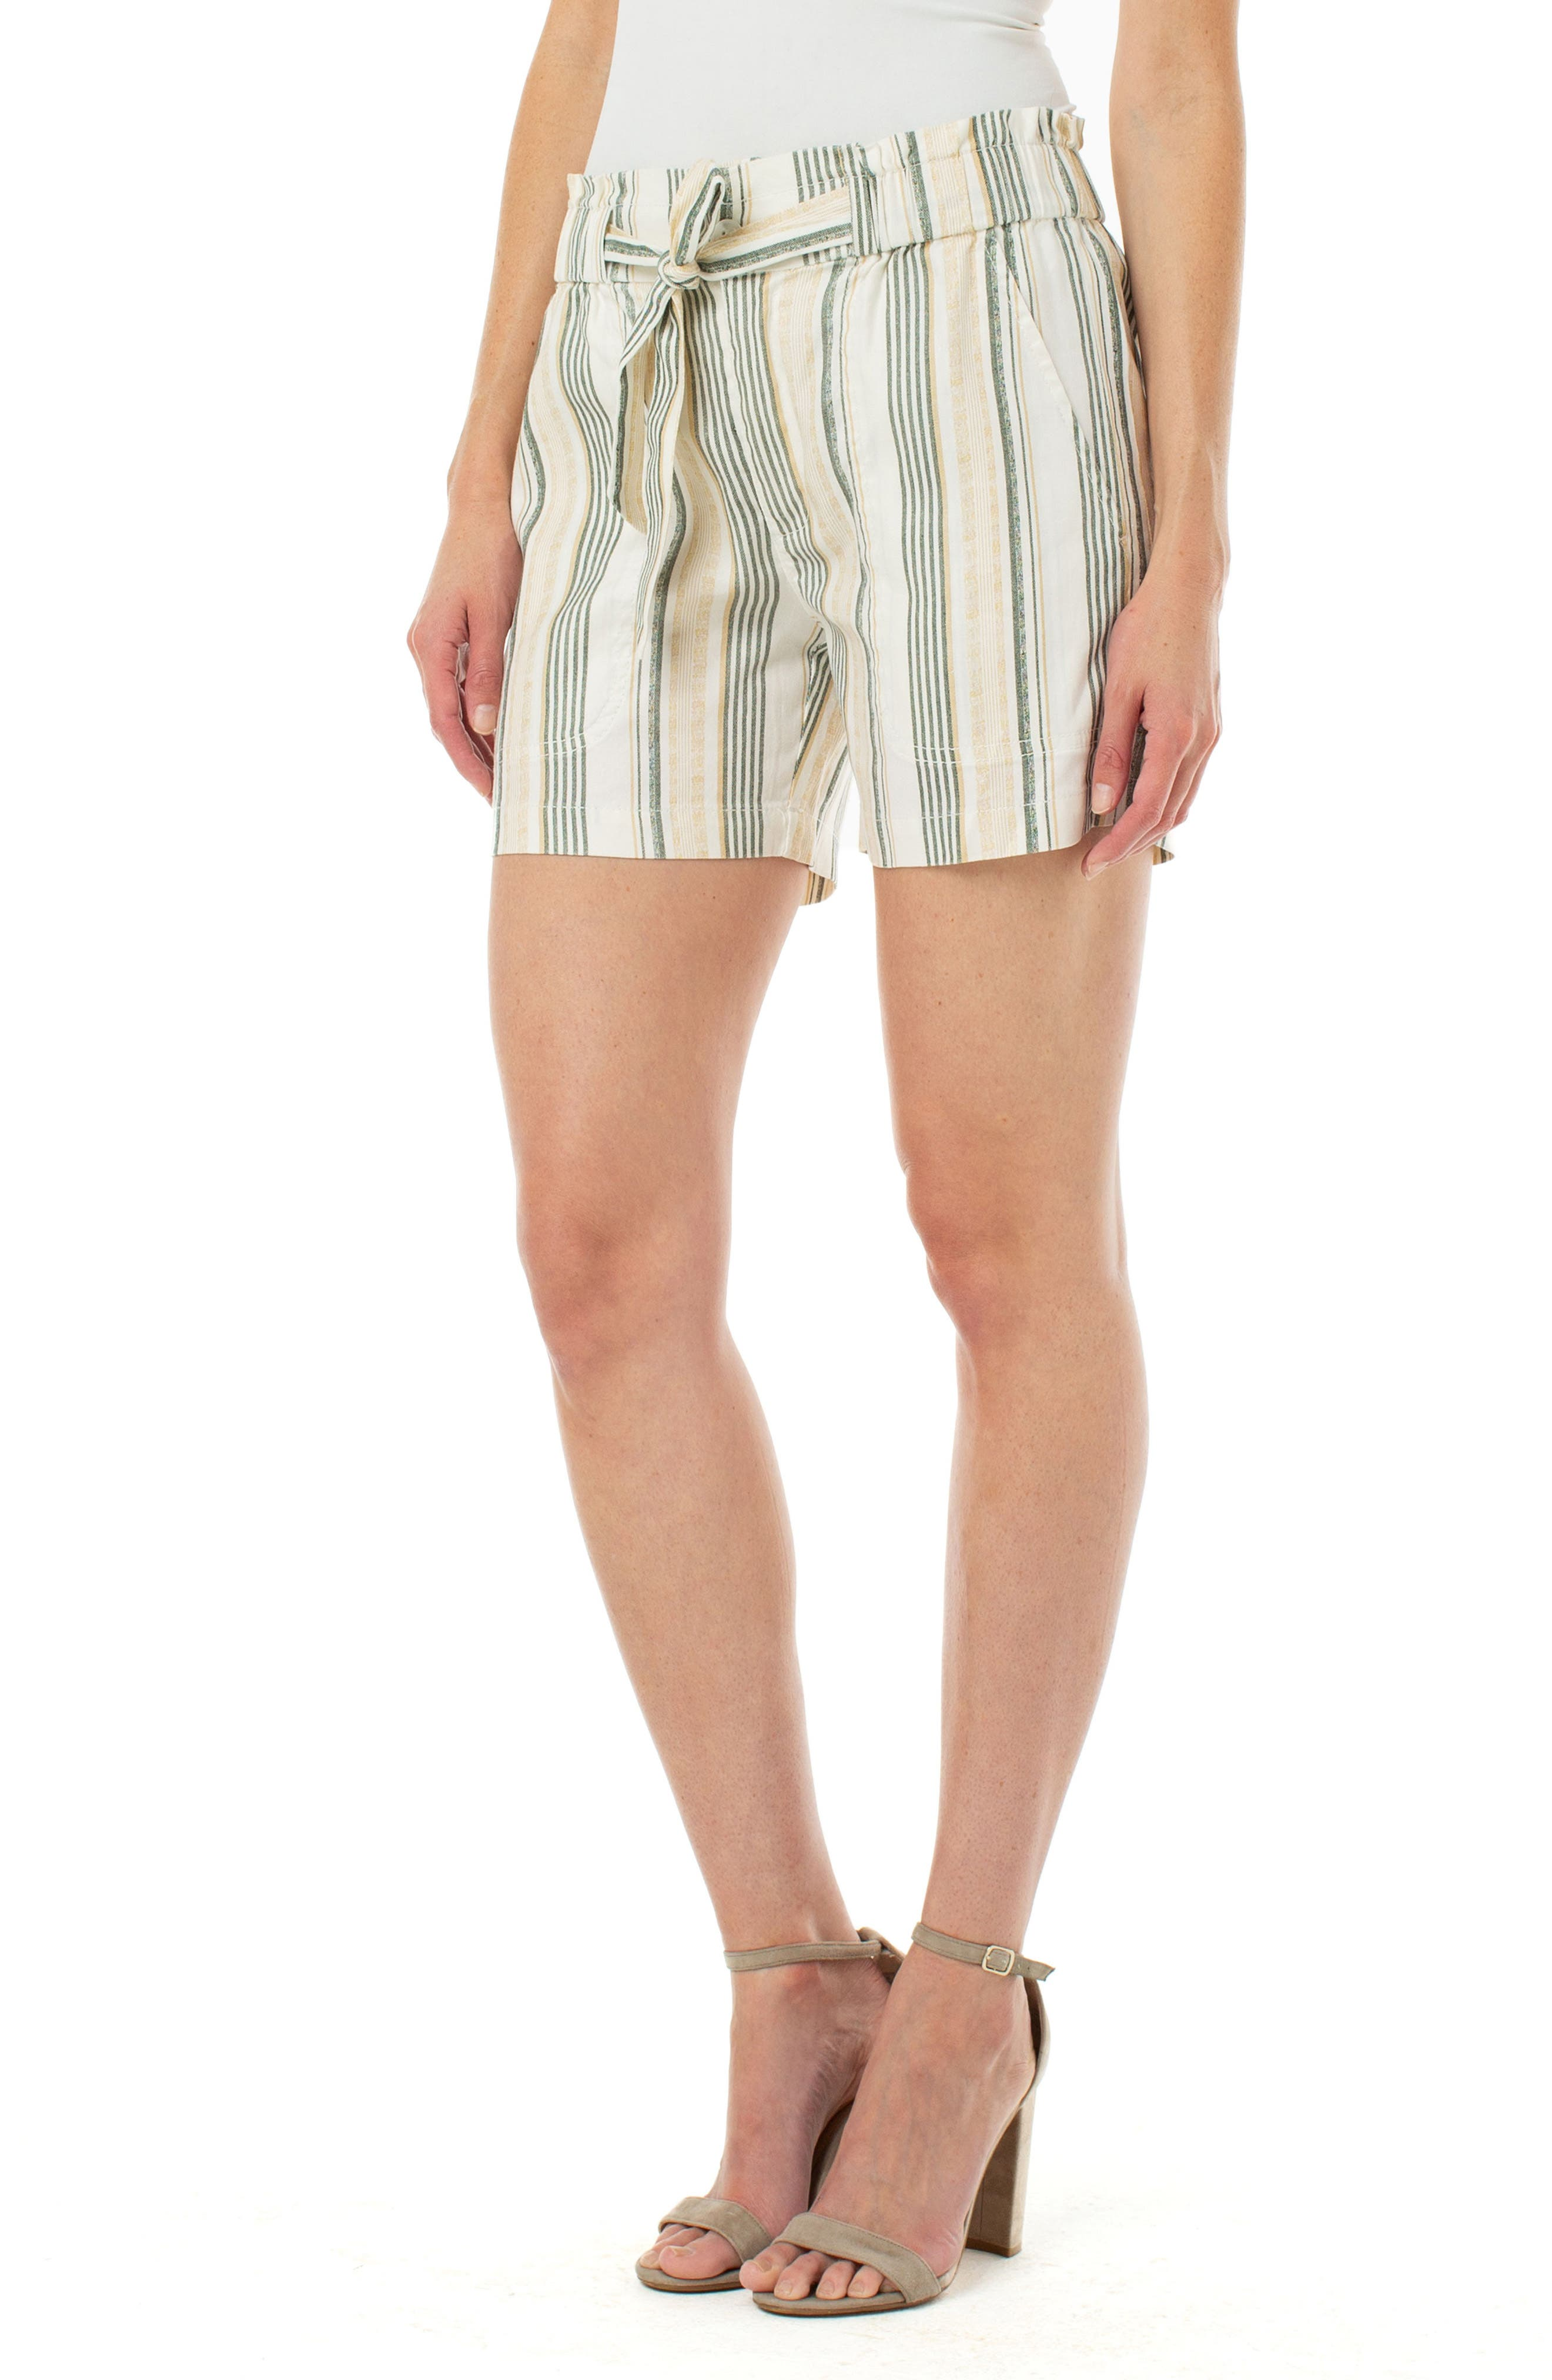 Sun-faded stripes pattern these light linen-blend shorts cinched into a ruffled paperbag waist. Style Name: Liverpool Stripe Porkchop Pocket Belted Linen Blend Shorts. Style Number: 6073029. Available in stores.